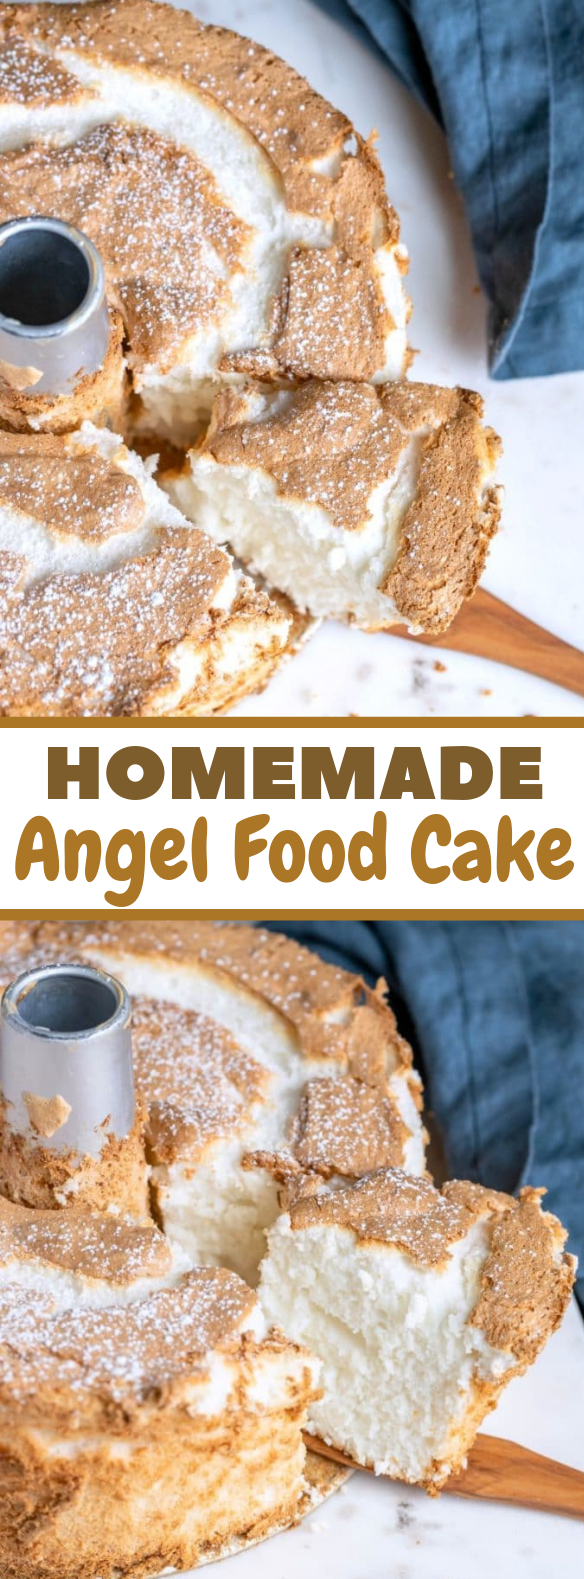 Angel Food Cake #dessert #cakerecipe